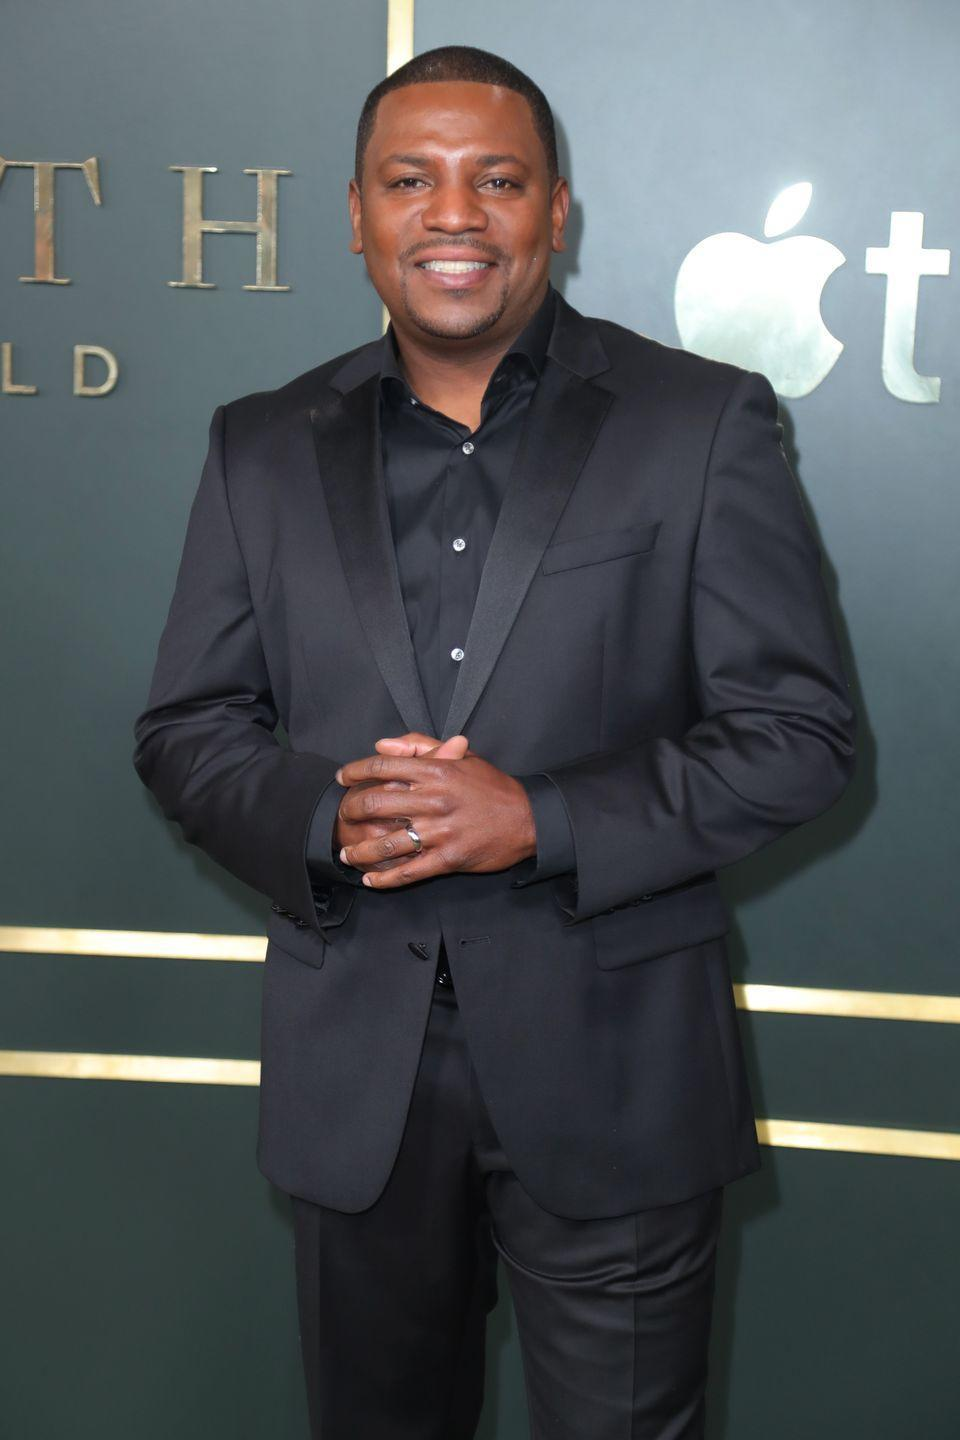 <p>Now 45, Phifer leads the Apple TV+ drama series <em>Truth Be Told</em>, which was recently picked up for a second season. </p>